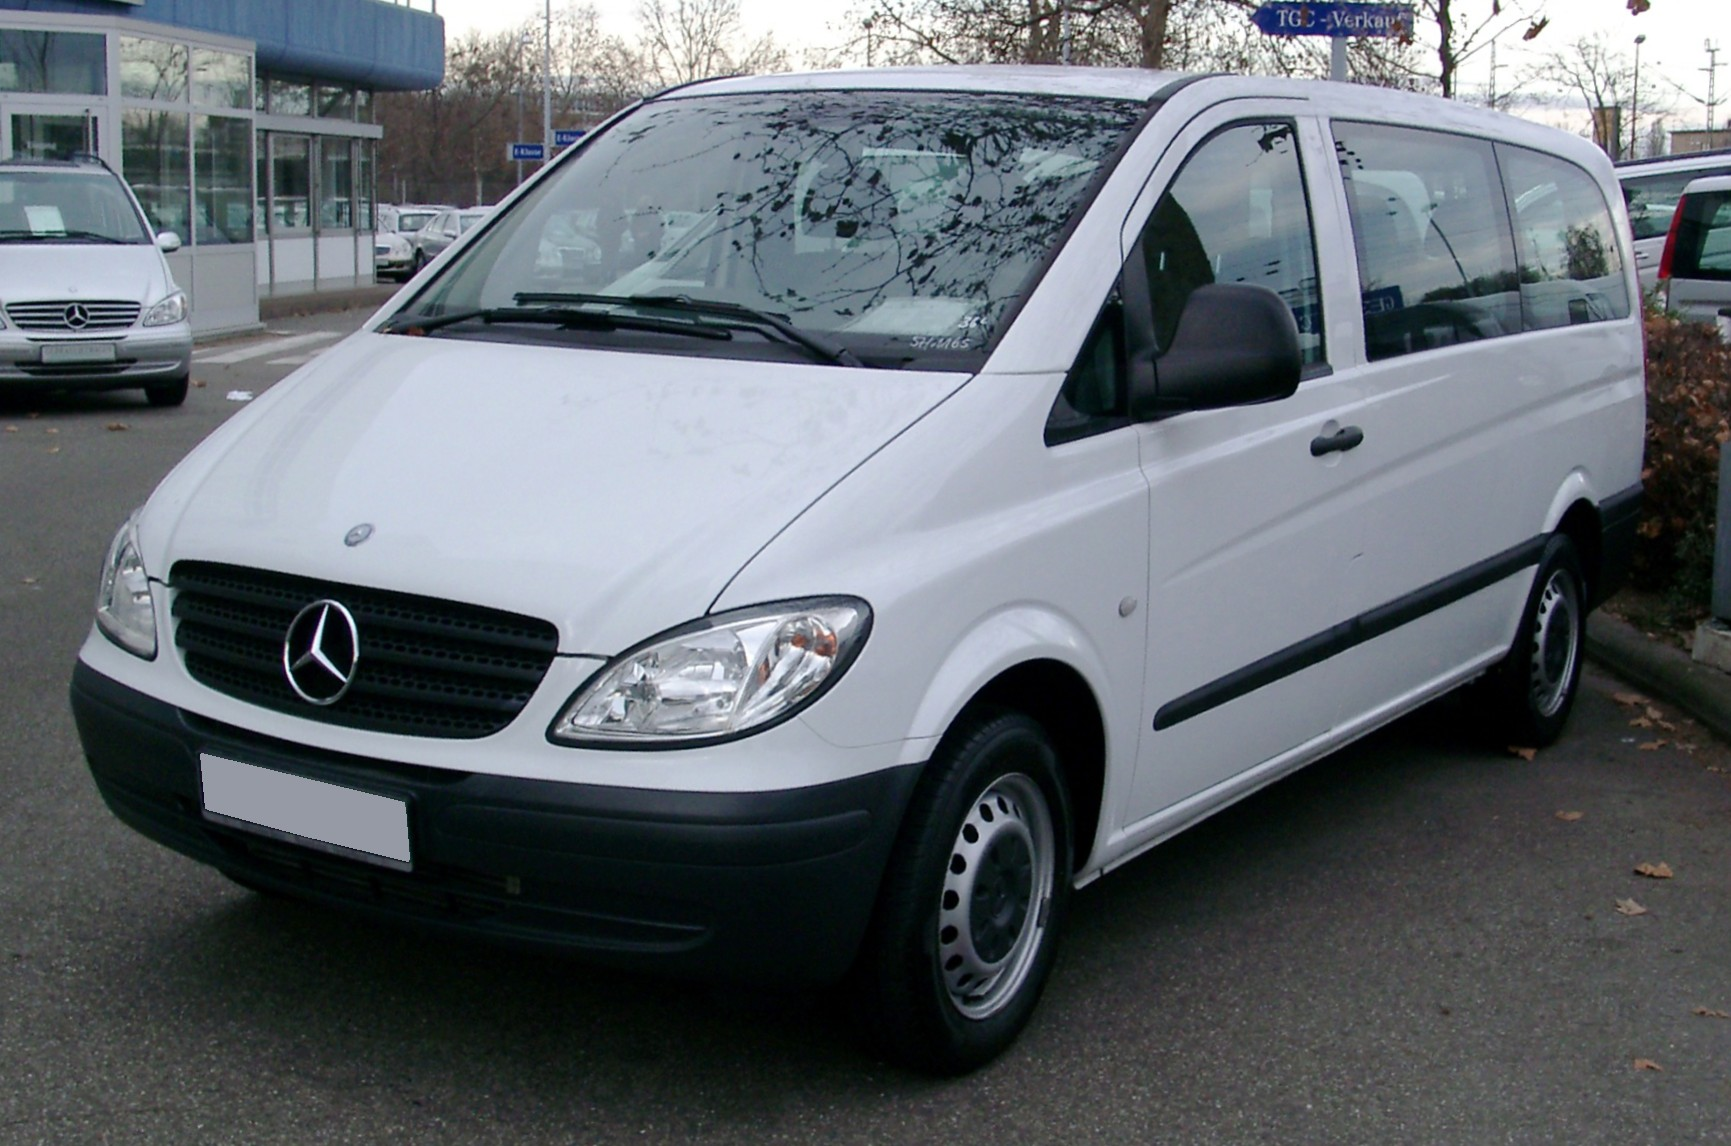 bec83532cd Mercedes-Benz Vito 123 2008 Technical specifications